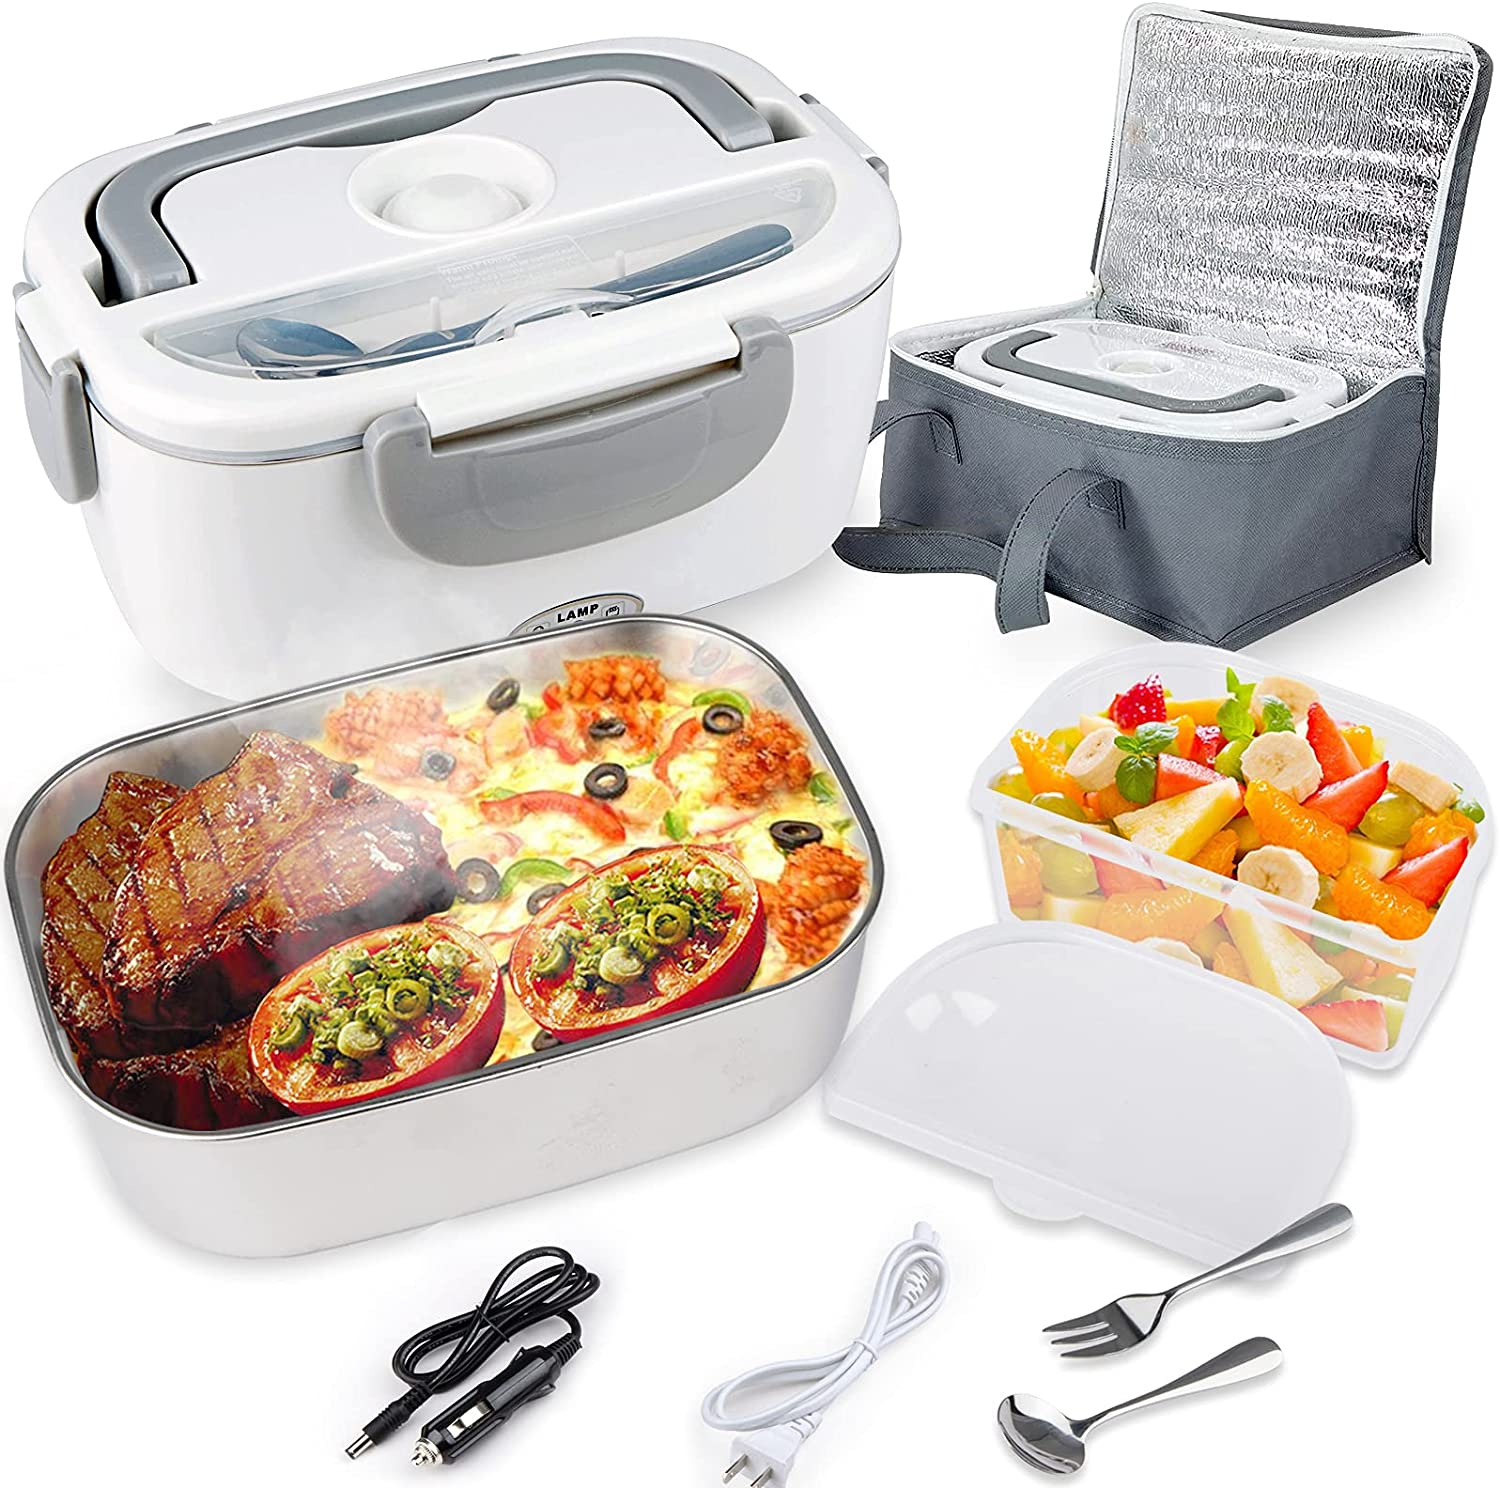 Electric Lunch Box 2-In-1 Portable Food Warmer 1.5L for Car, Truck, Home and Work 12V & 110V, Includes Leak Proof, 2 Compartments, Removable 304 Stainless Steel Container, Spoon & Fork and Carry Bag